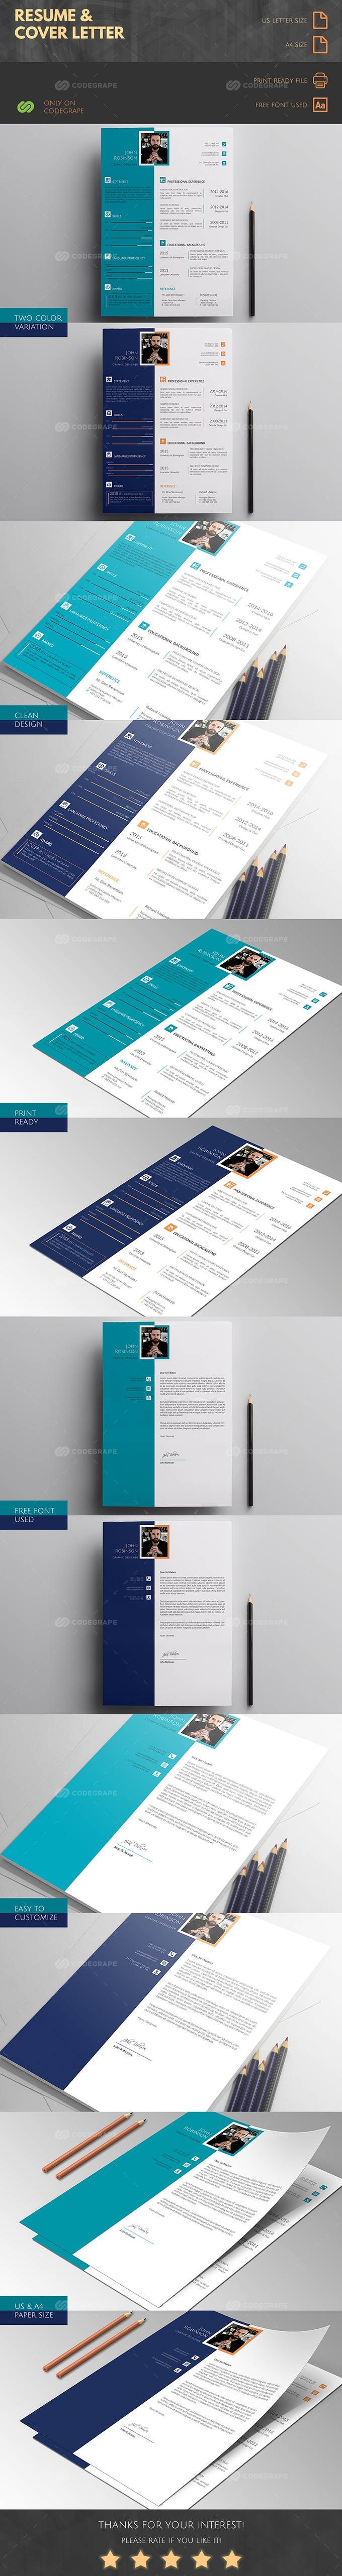 Resume & Cover Letter Design